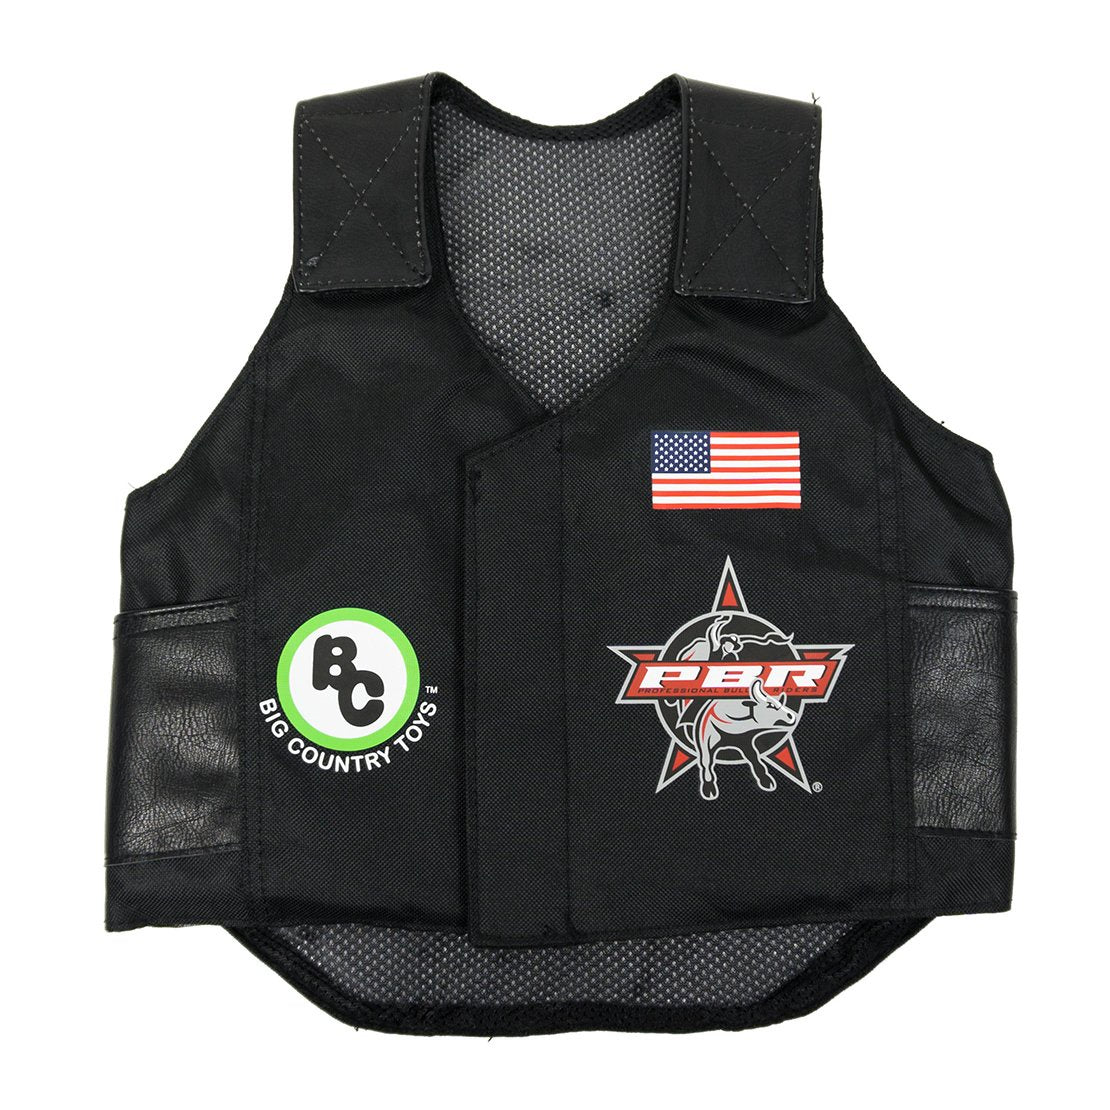 Big Country Toys- PBR Rodeo Vest